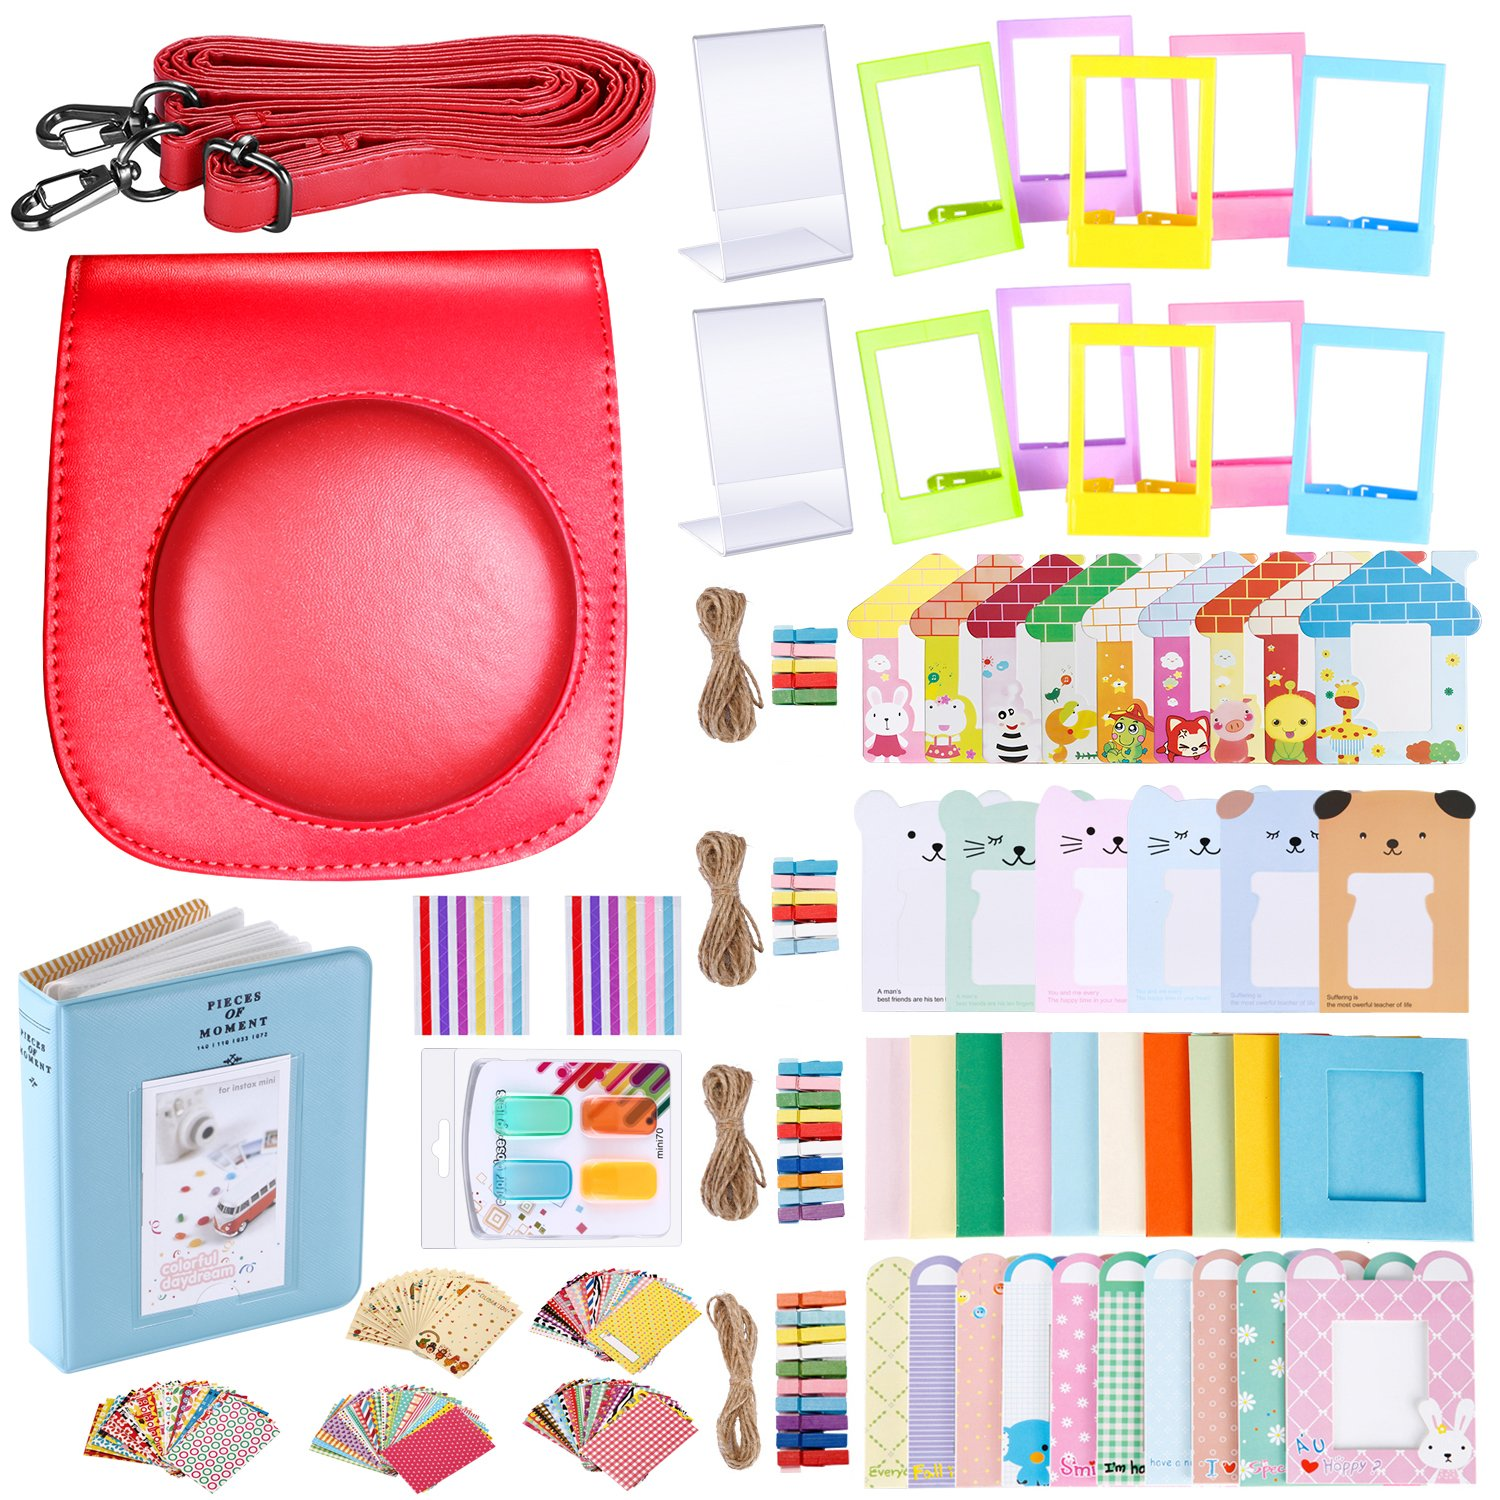 Neewer 56-in-1 Accessory Kit for Fujifilm Instax Mini 70 (Red),Includes: Camera Case with Adjustable Strap, Various Frames, Book Album, Color Filters, Corner Stickers, Photo Instant Film Stickers 10089477